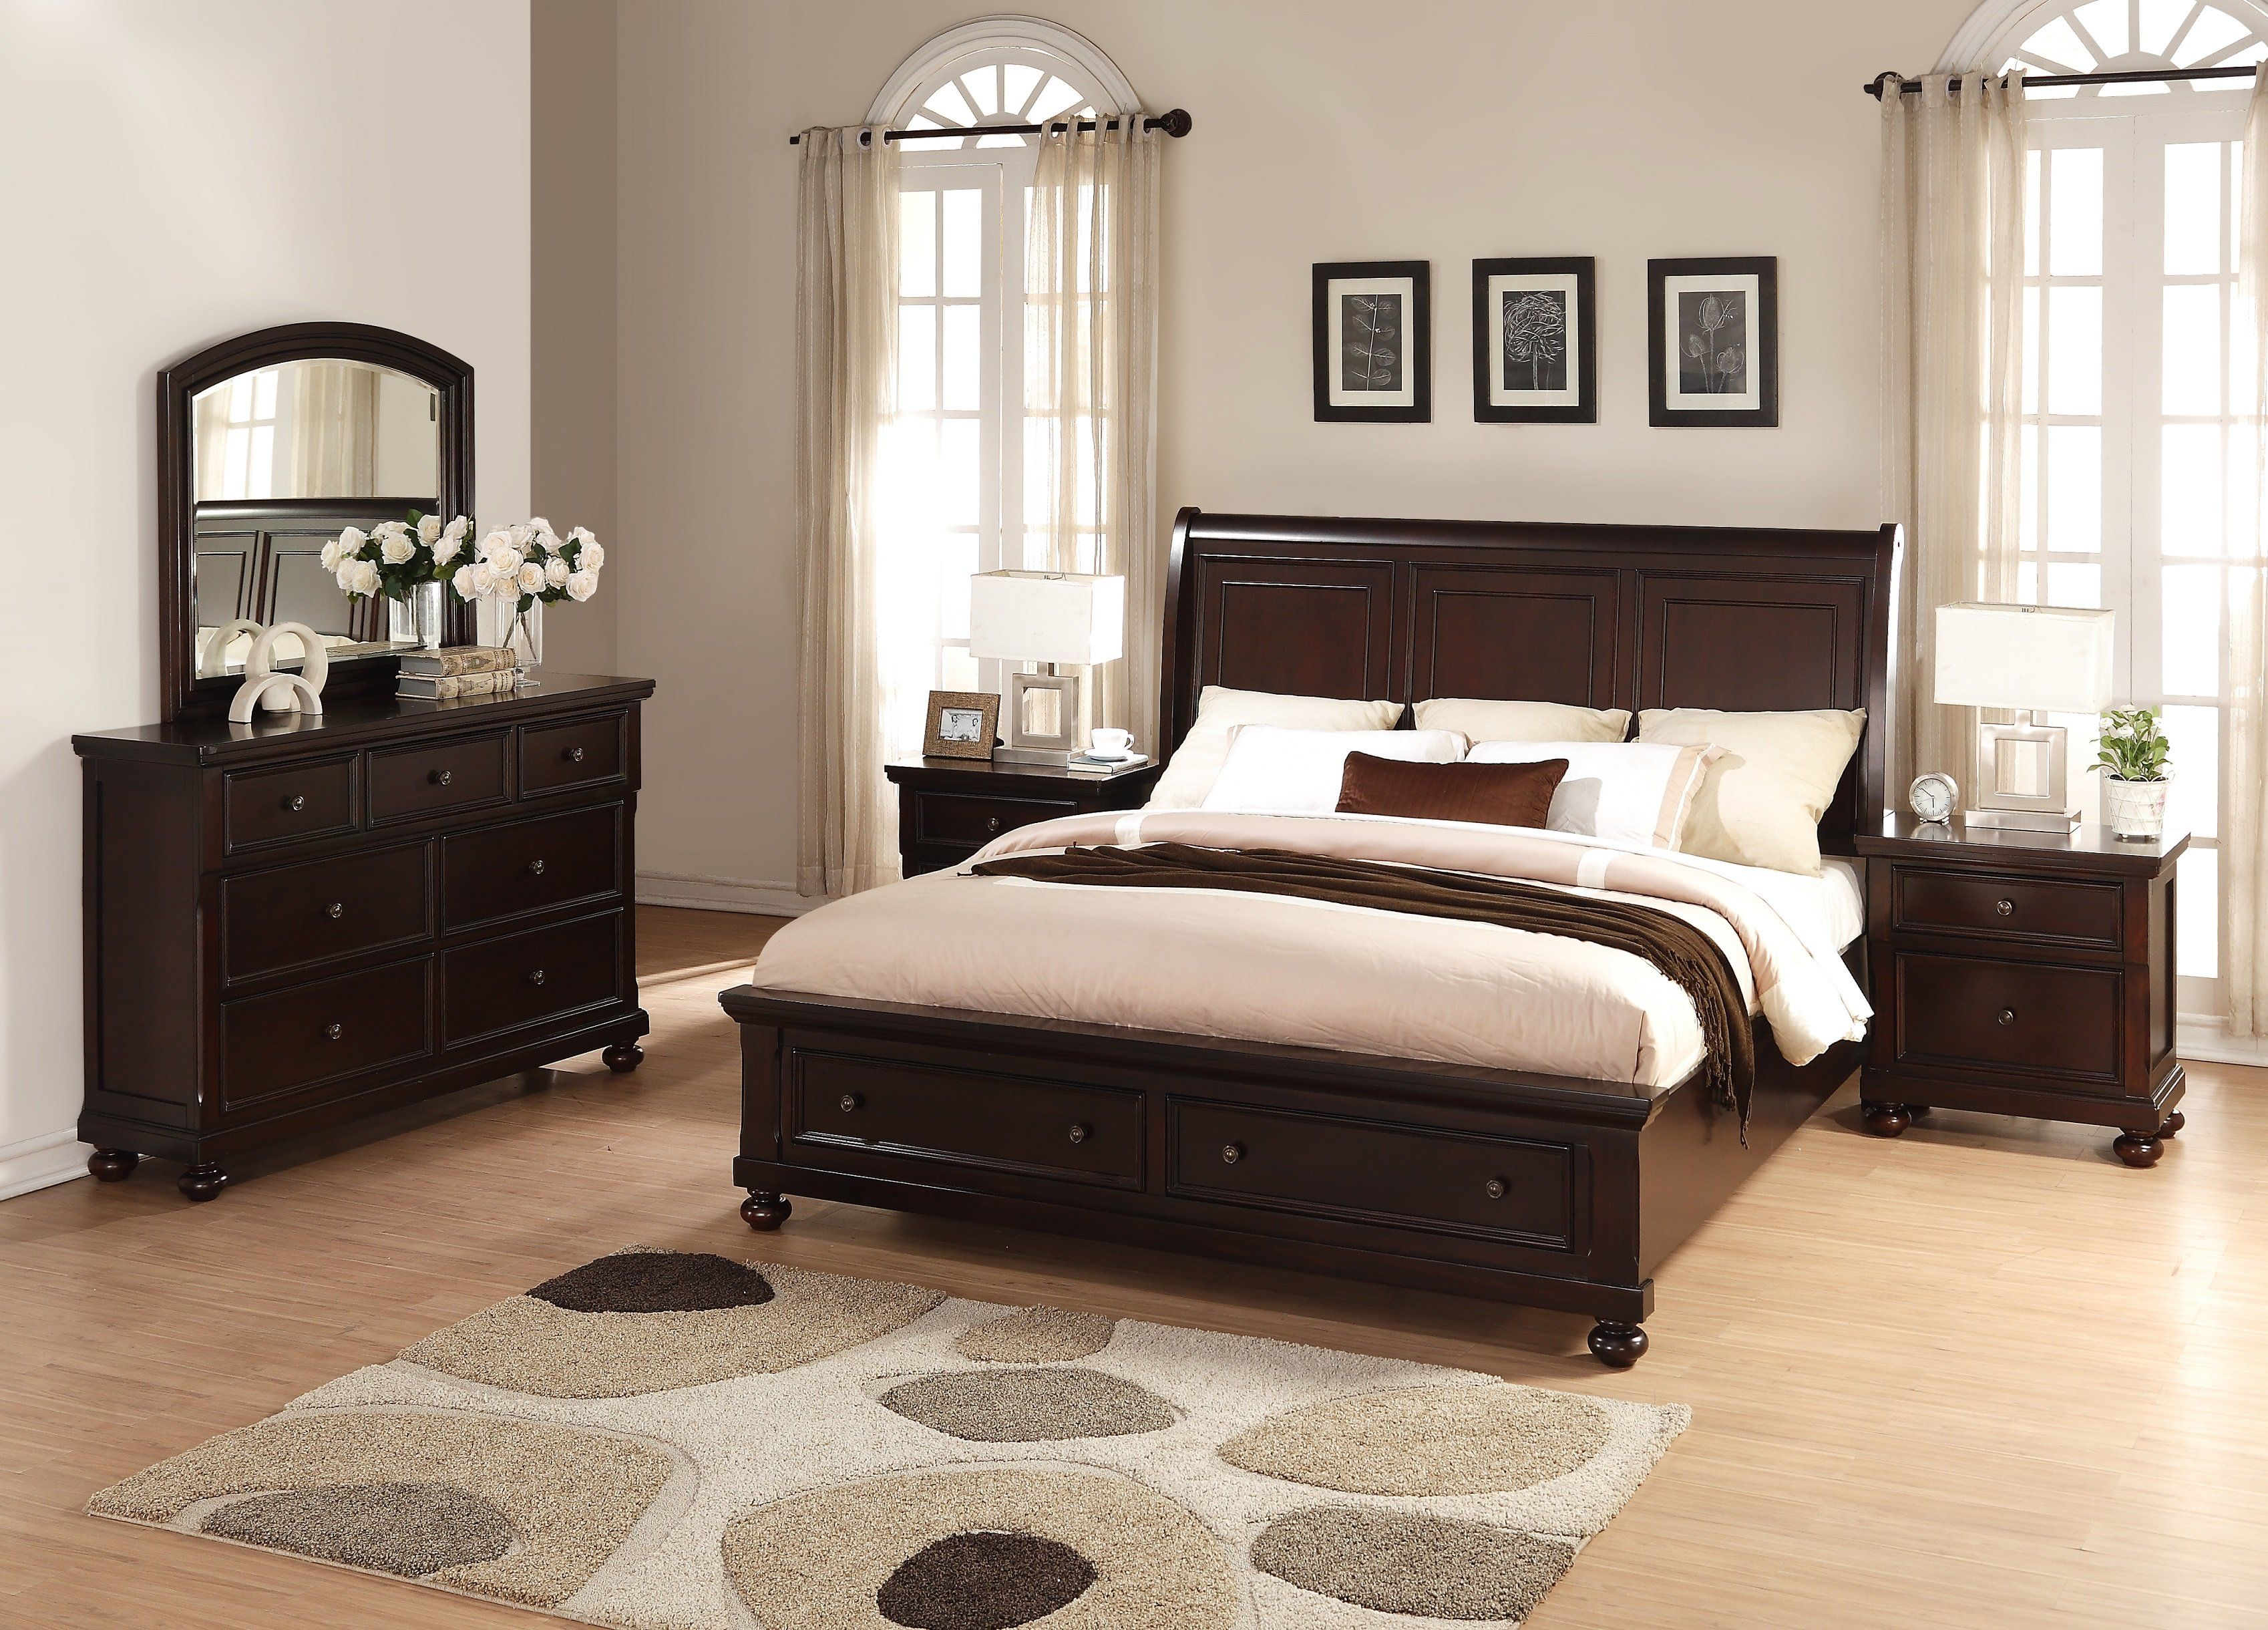 12 Incredible Designs Of How To Upgrade 5 Piece Bedroom Set King Queen Size Storage Bed King Size Storage Bed Furniture